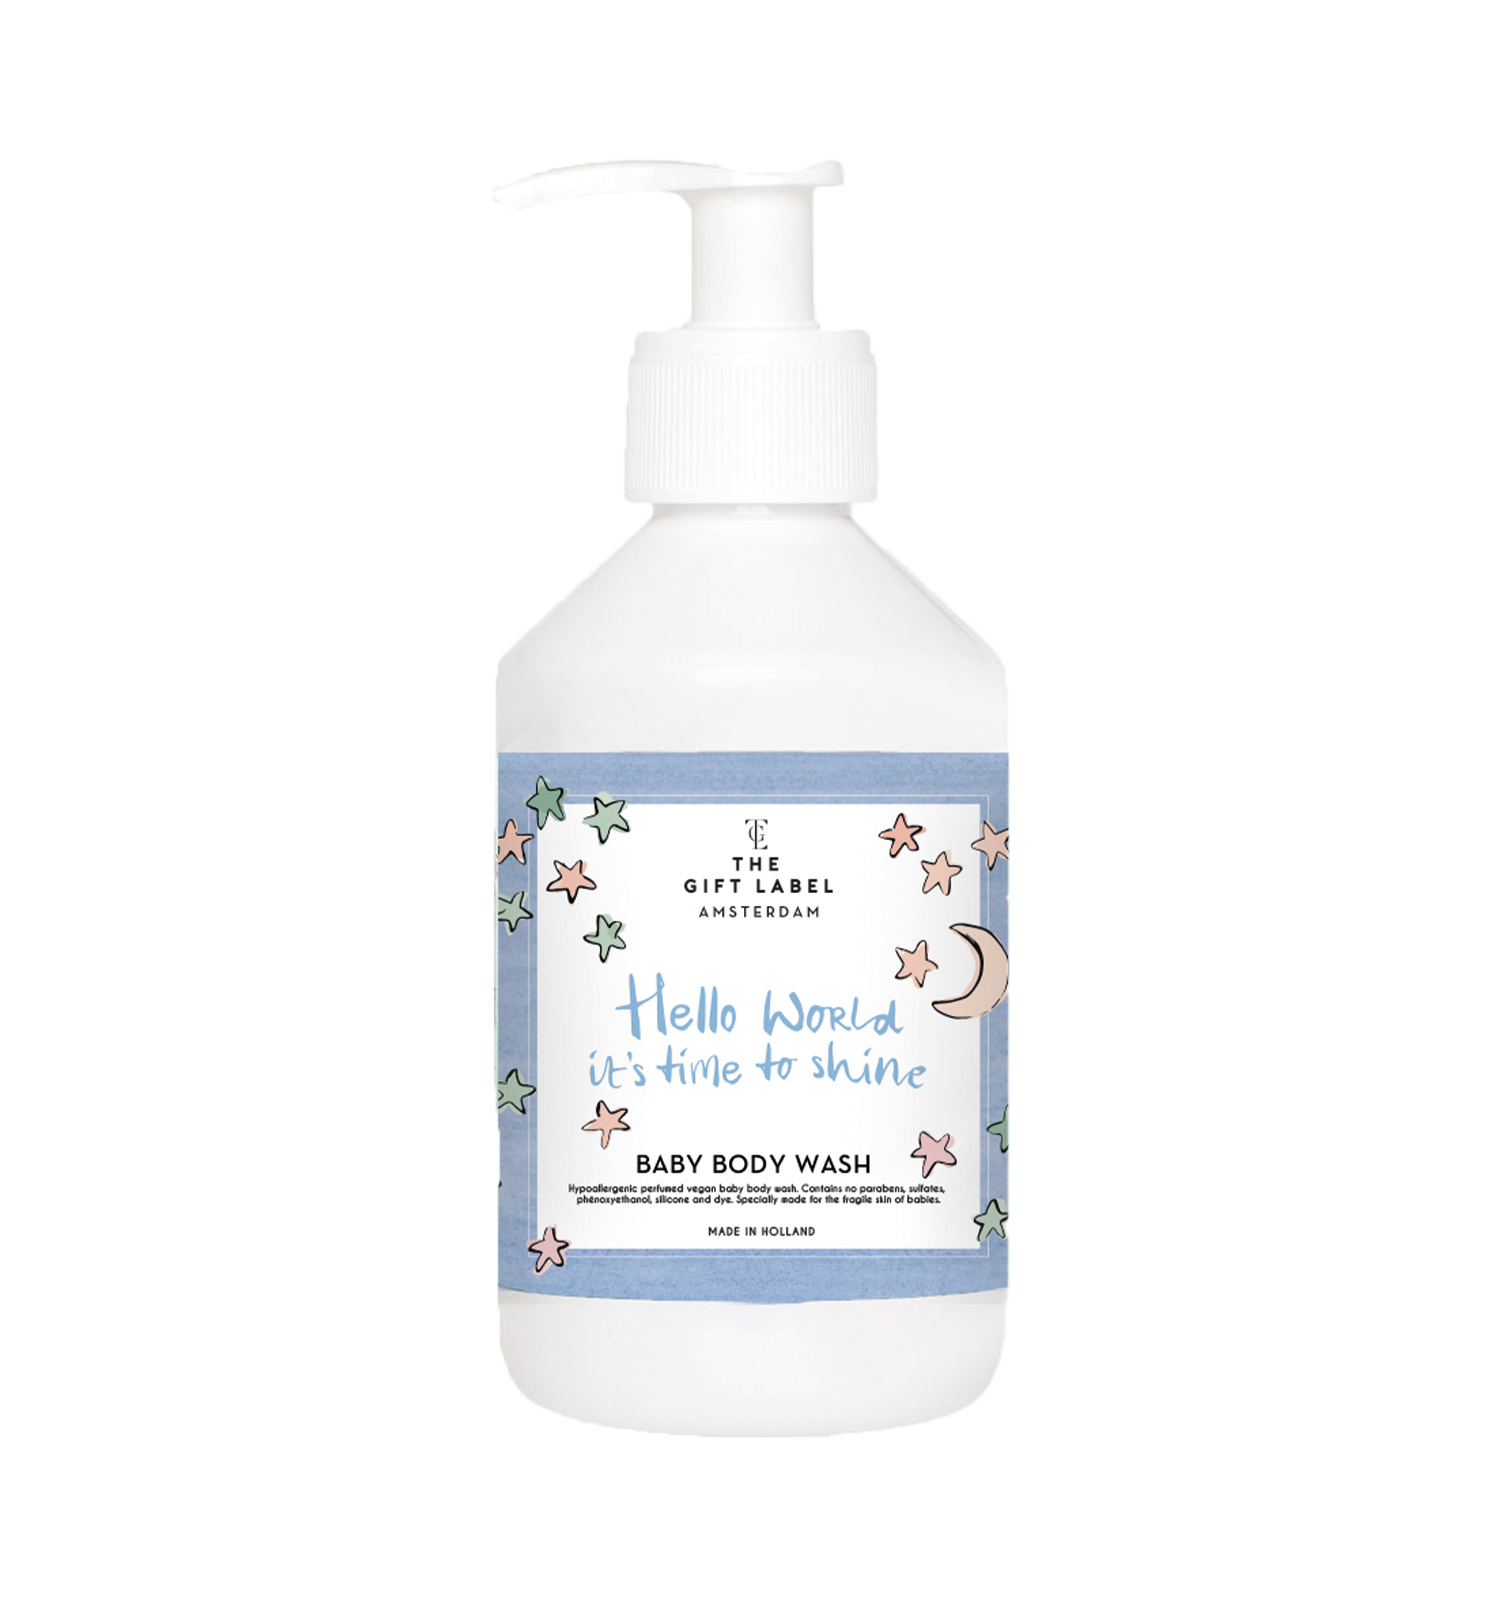 THE GIFT LABEL Baby body wash 250 ml | Hello world